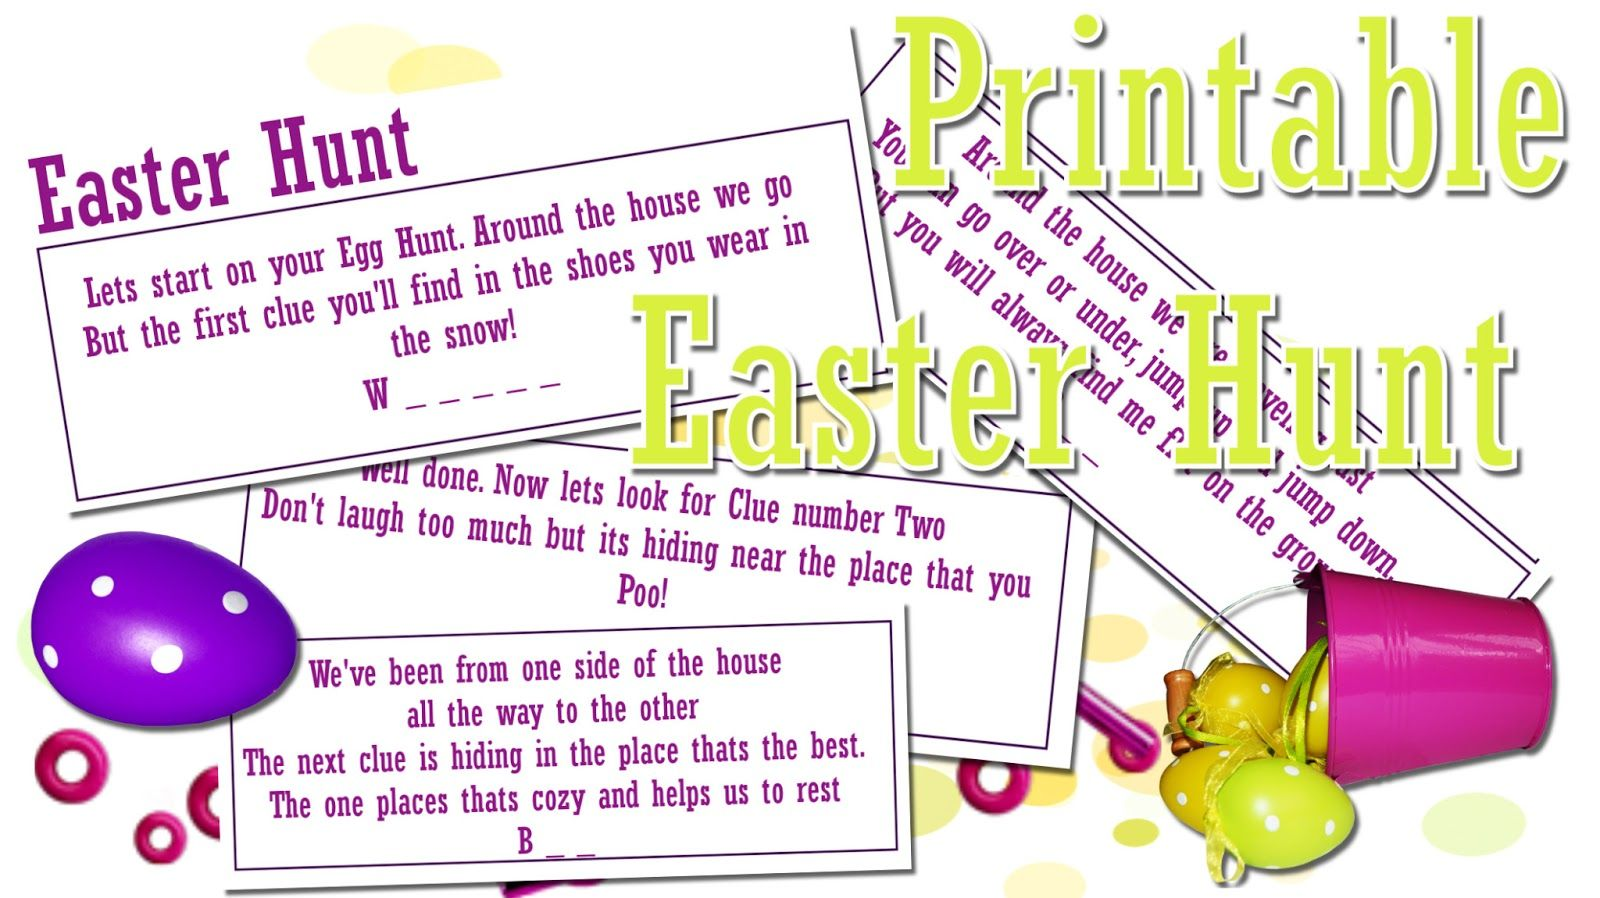 Free Print Out Printable Easter Egg Treasure Hunt Clues